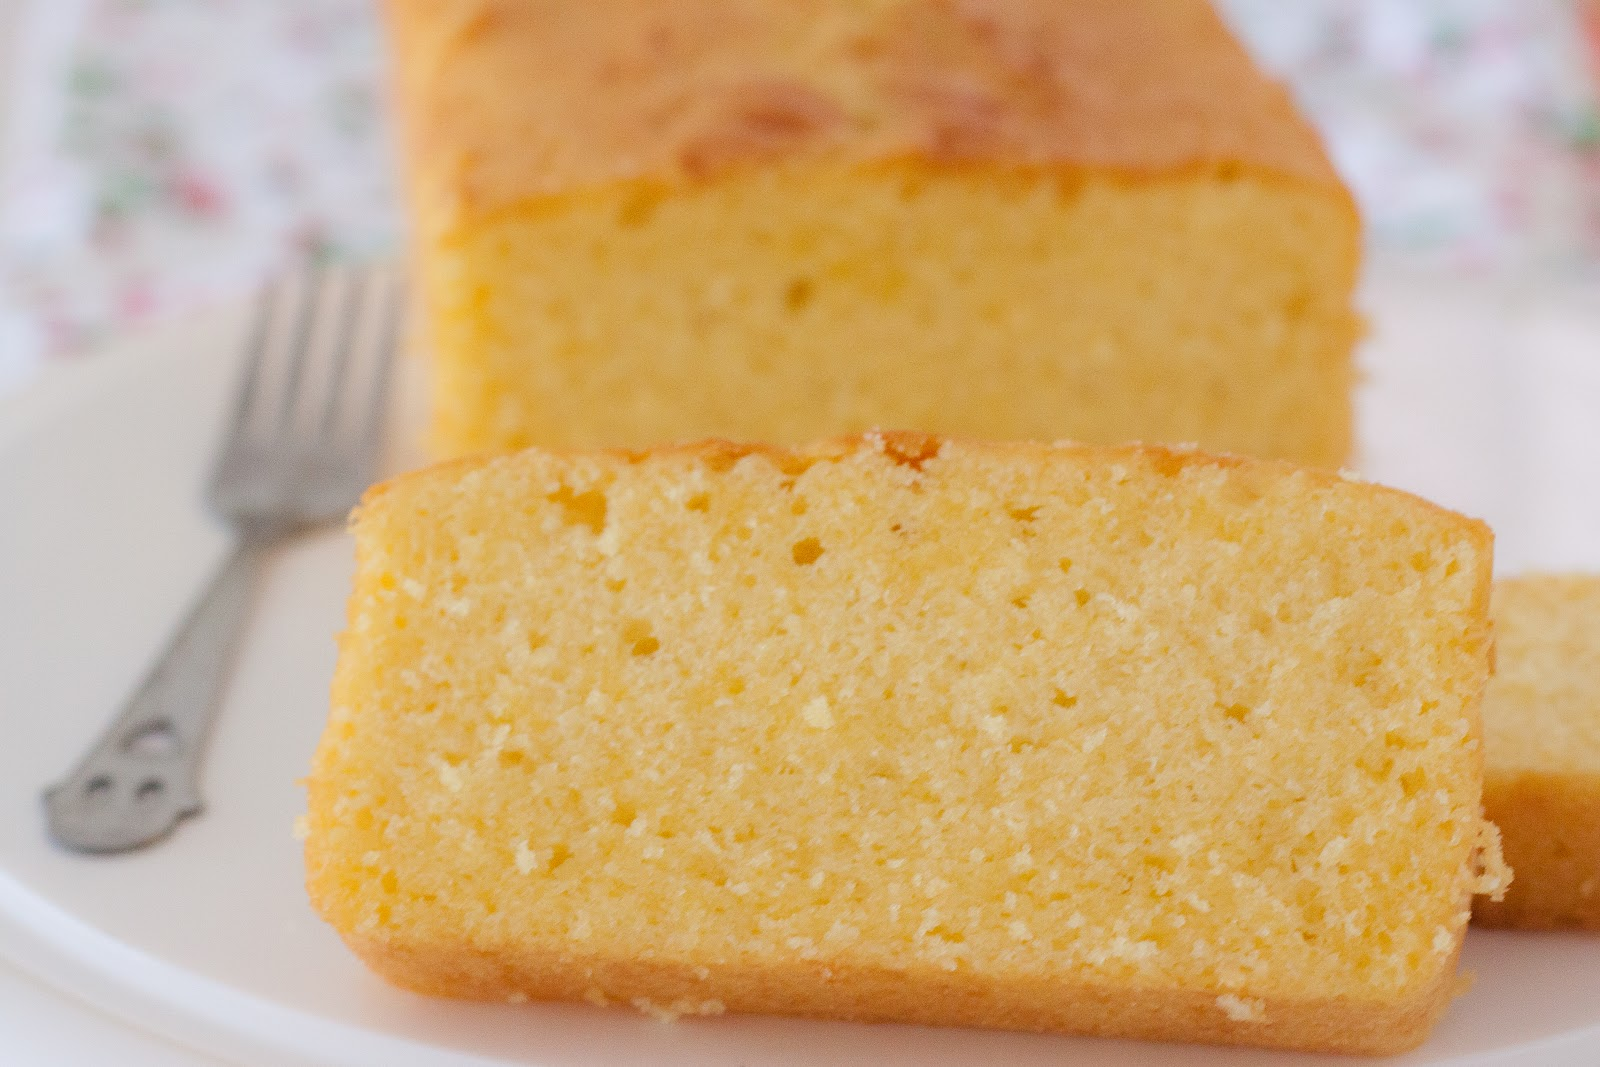 ... is Like a Long Journey: The Famous Mrs NgSK's Super Moist Butter Cake